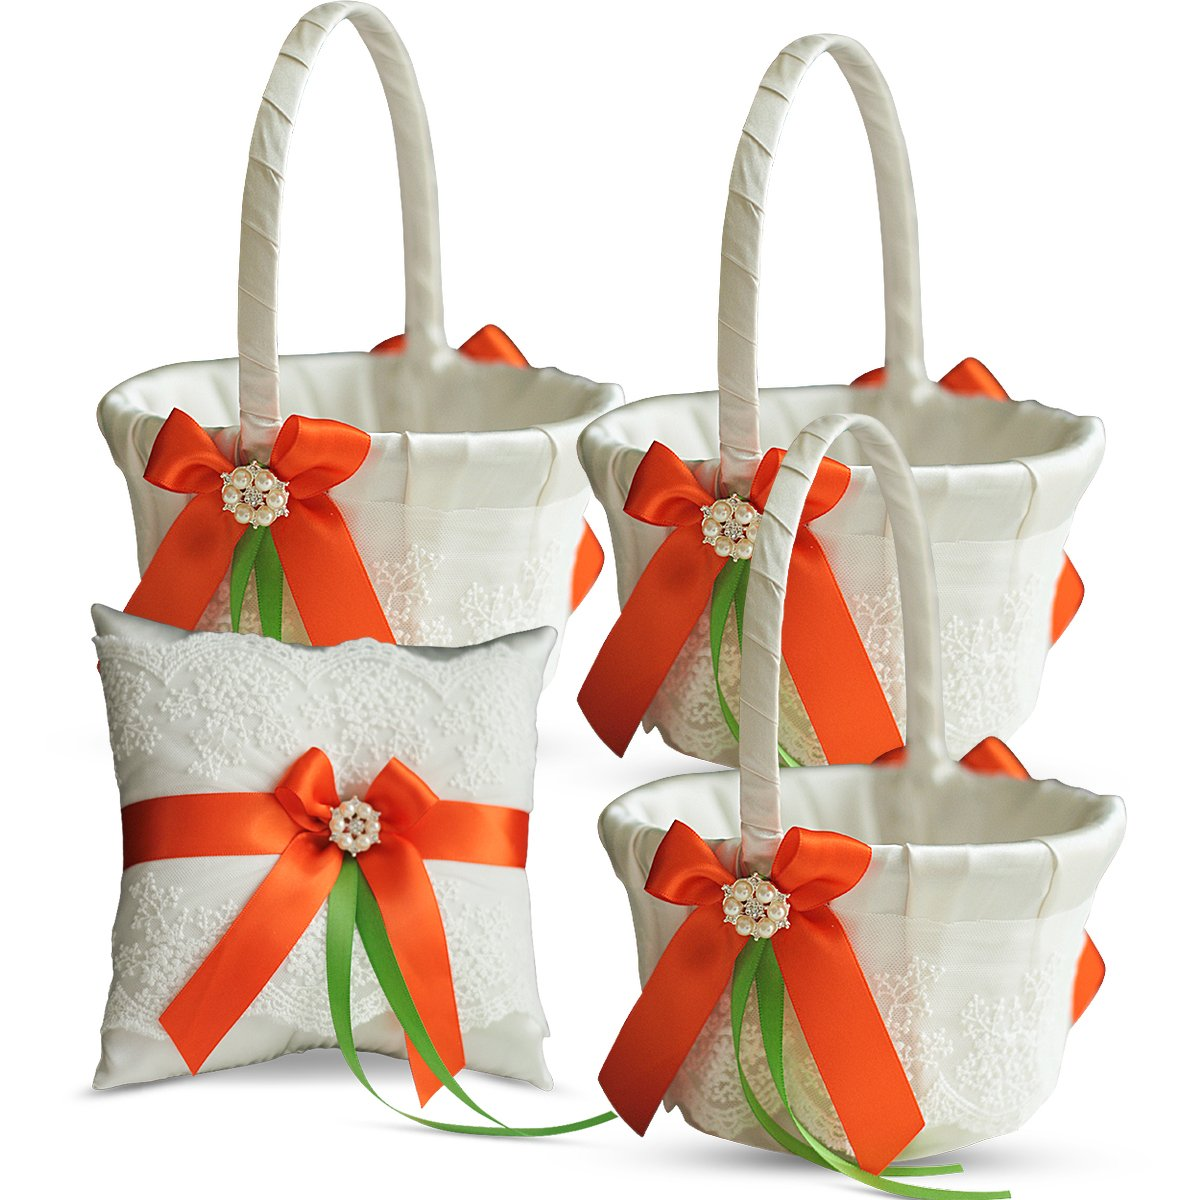 Roman Store Ivory Ring Bearer Pillow and Basket Set | Lace Collection | Flower Girl & Welcome Basket for Guest | Handmade Wedding Baskets & Pillows (Orange Lime) by Roman Store (Image #1)